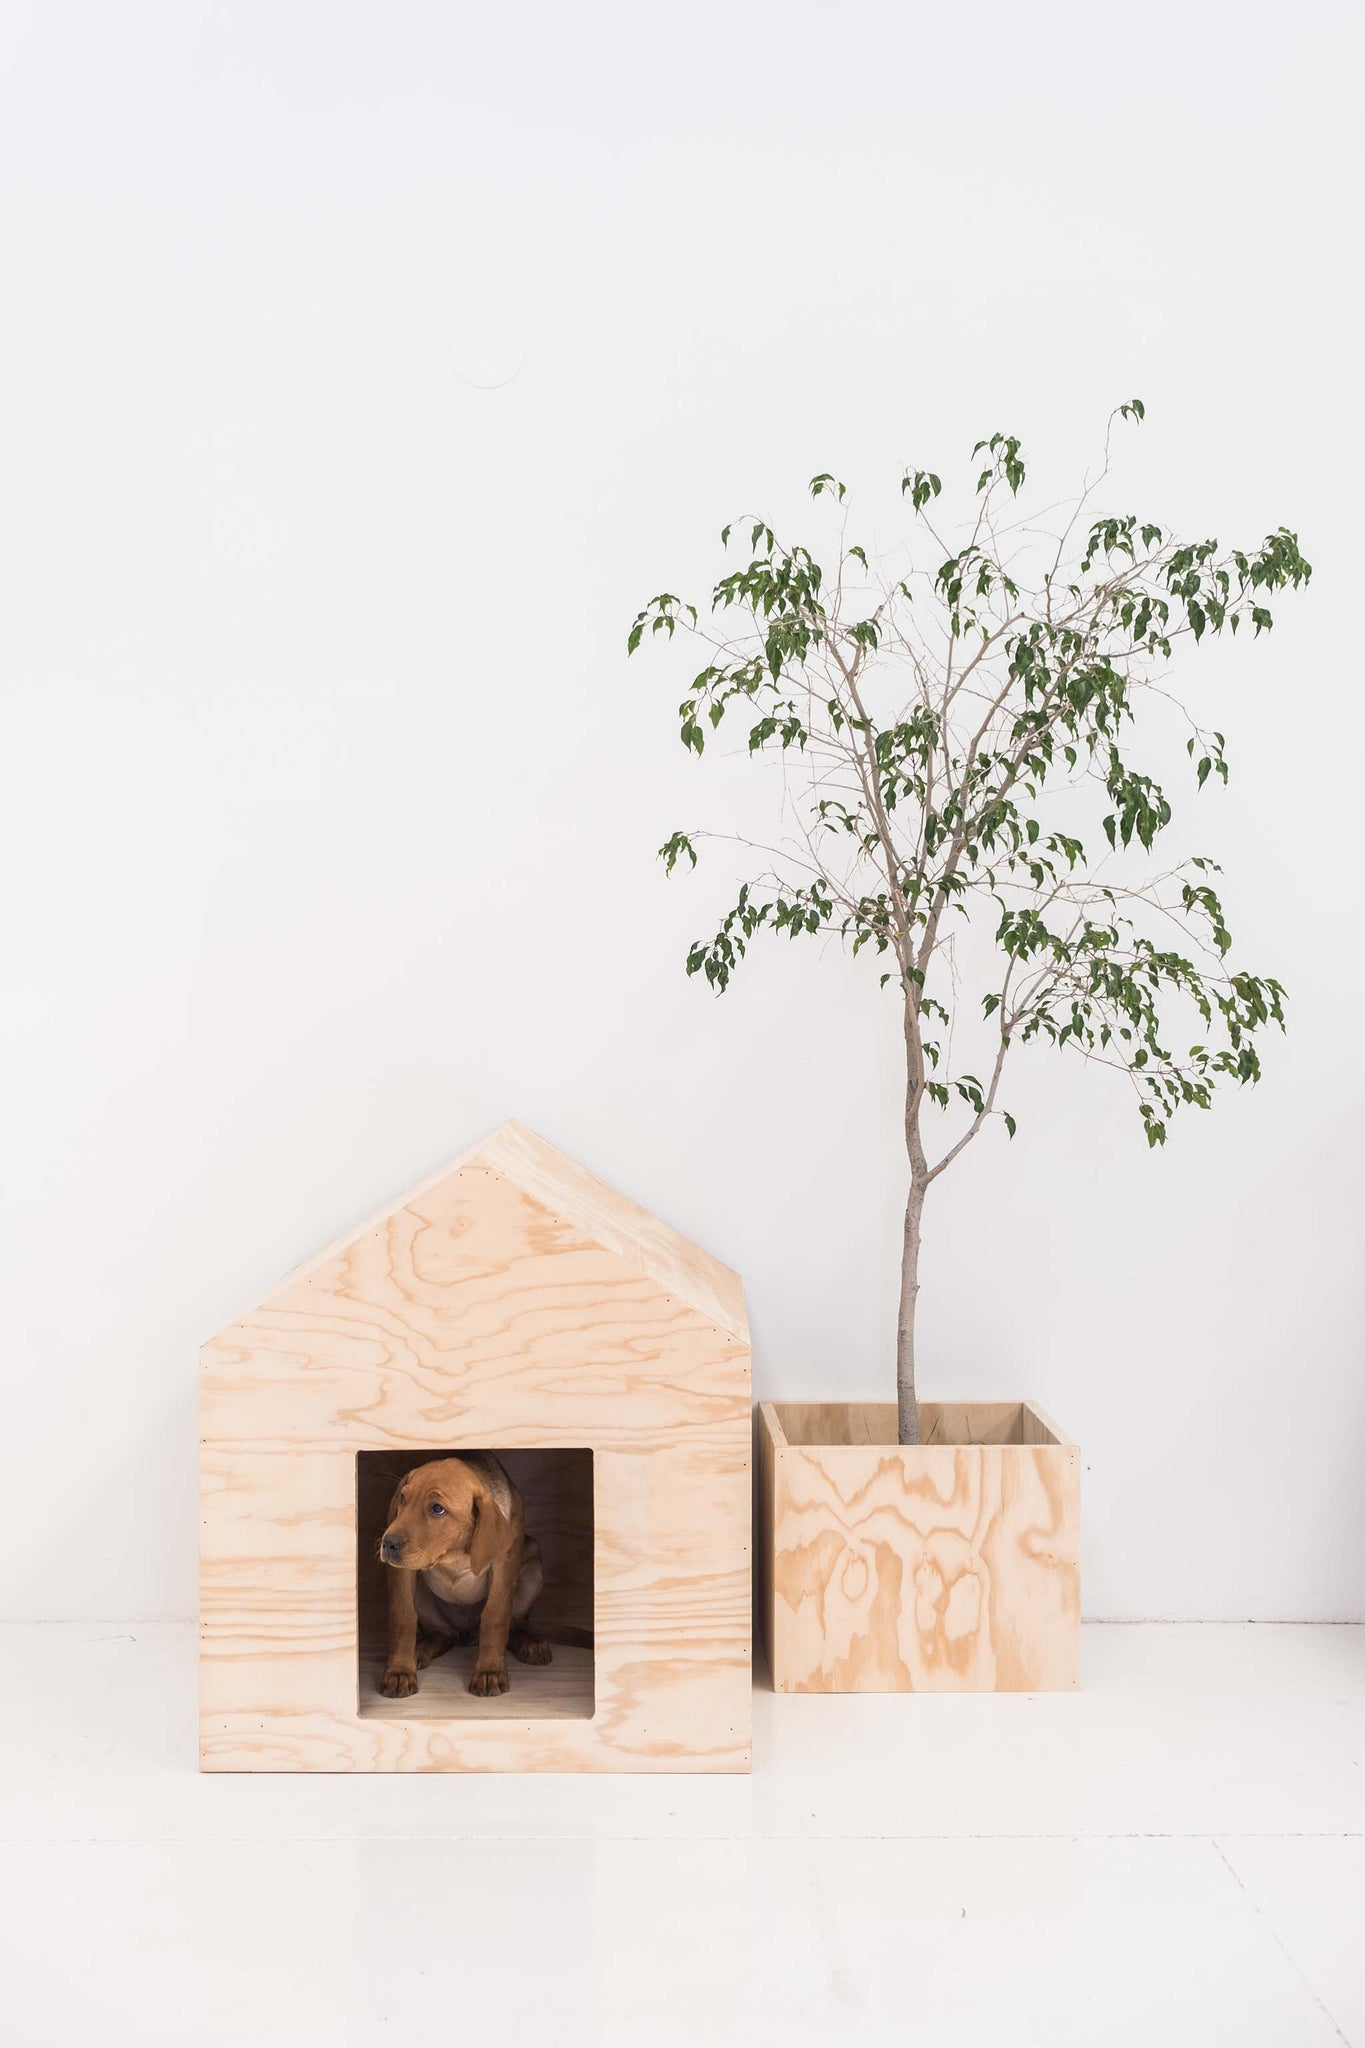 cute labrador puppy in wooden dog kennel with tree next to it